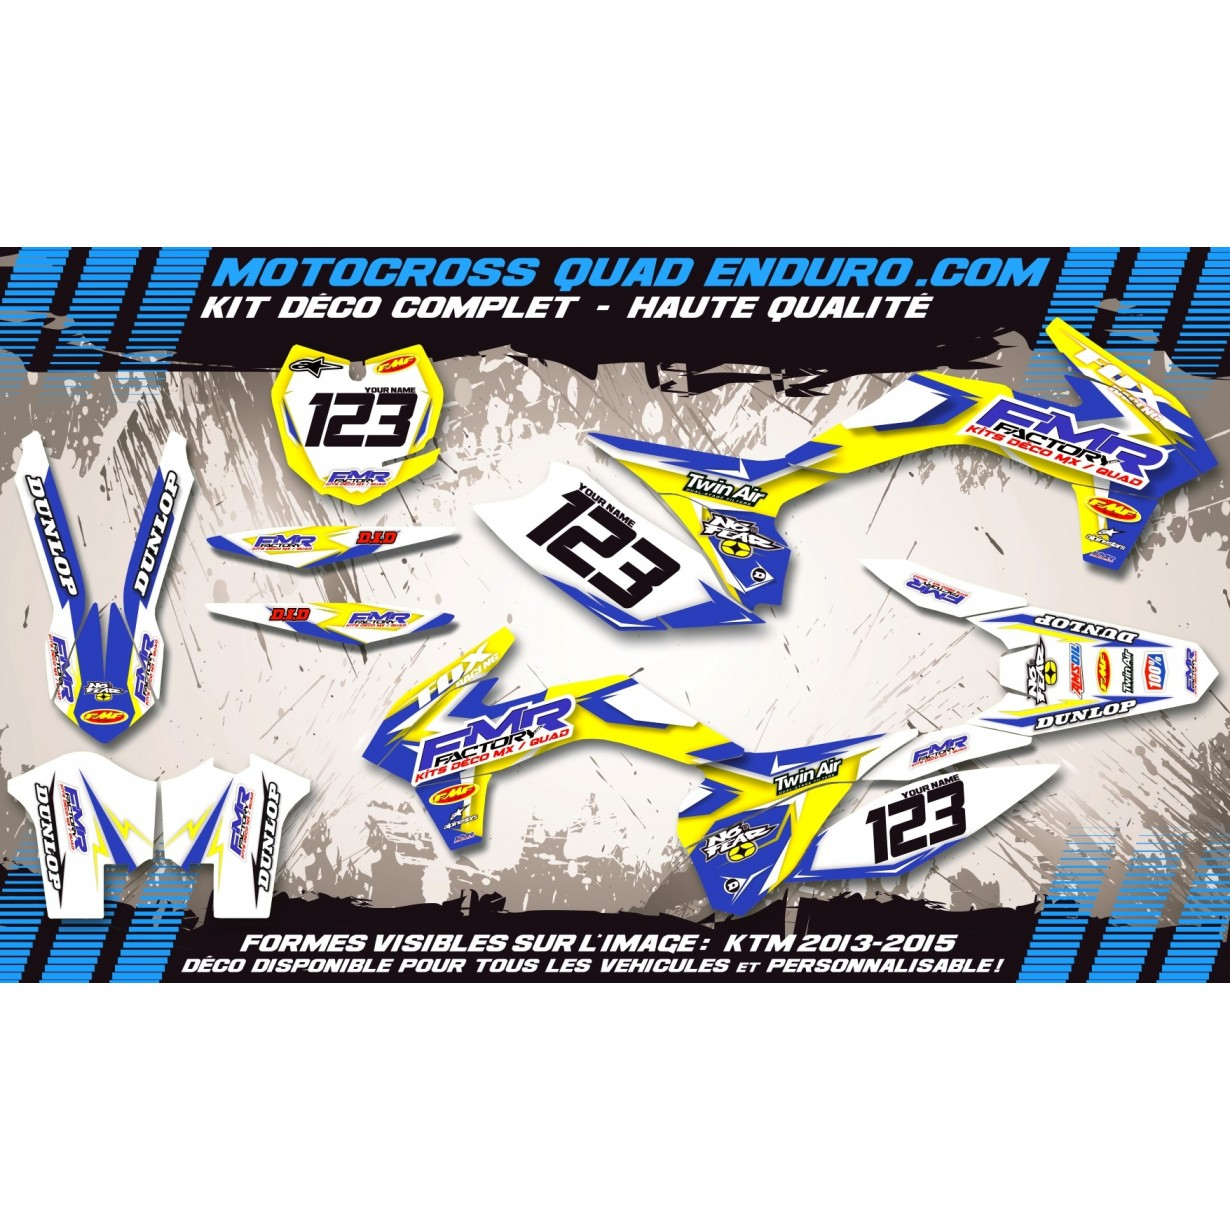 KIT DÉCO Perso TC 250 08-13 Fmr Factory MA13D